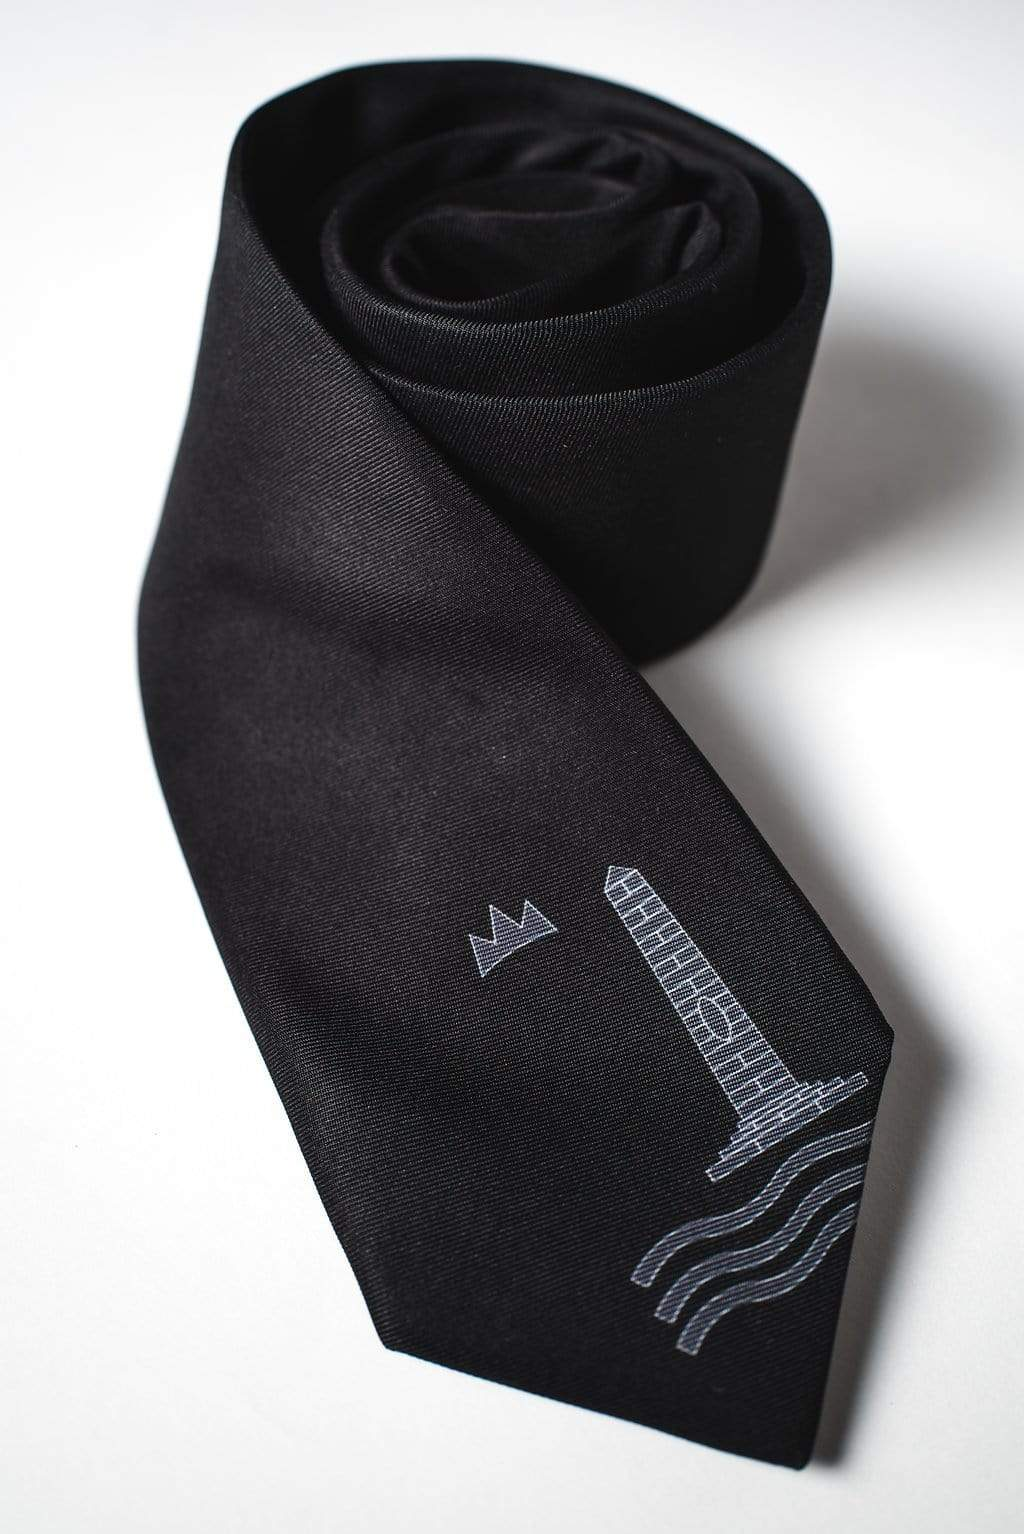 Croatian Men's Tie | Lingo Luxe The Luscious-Lingo Luxe Bespoke